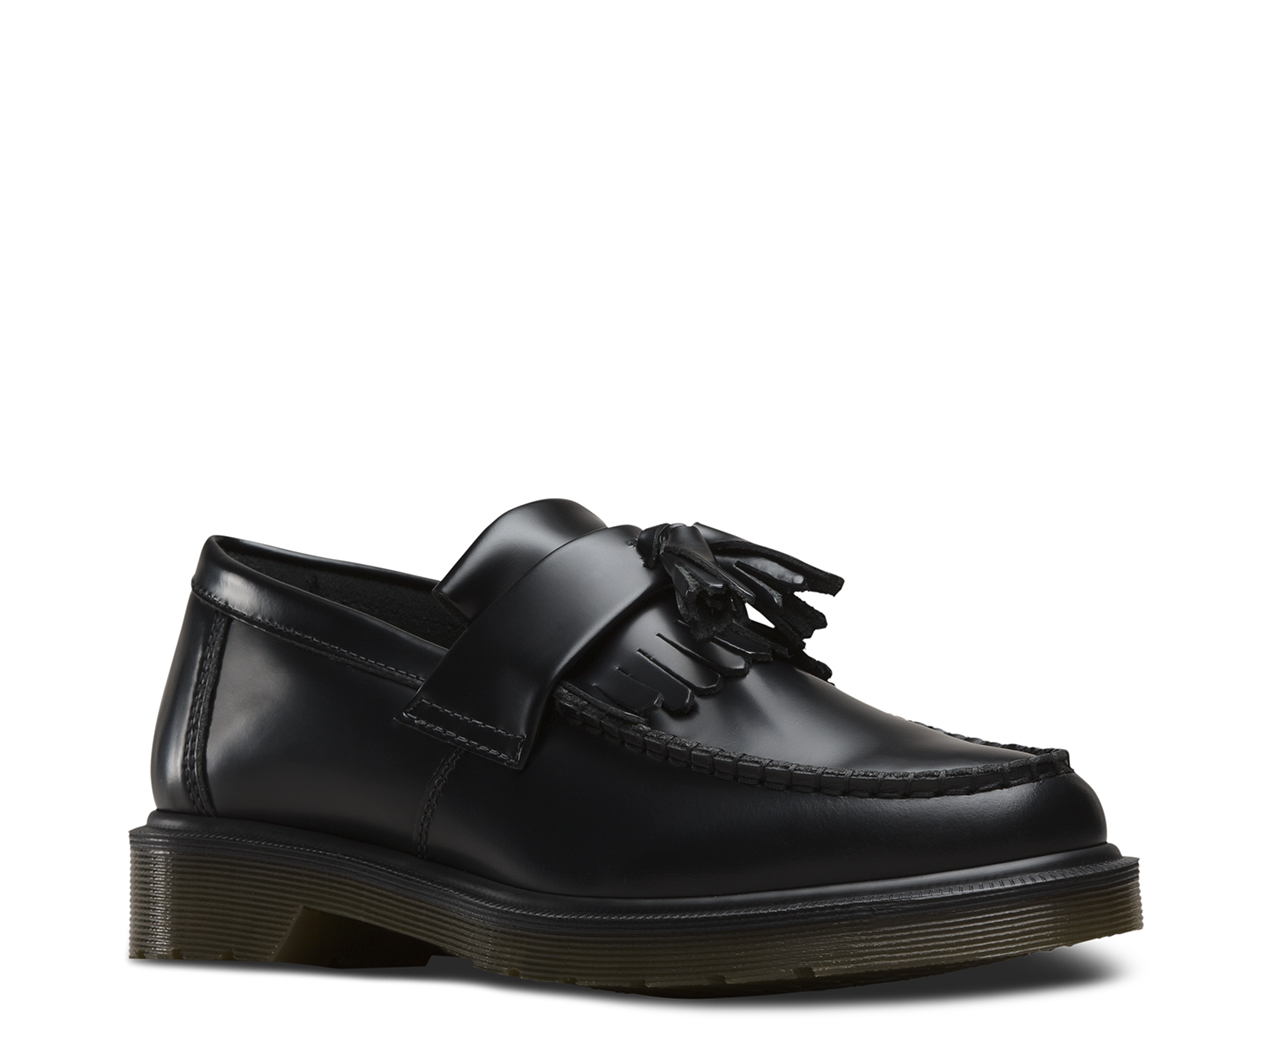 Dr Martens Adrian Black Smooth Leather Loafer Shoes -5371